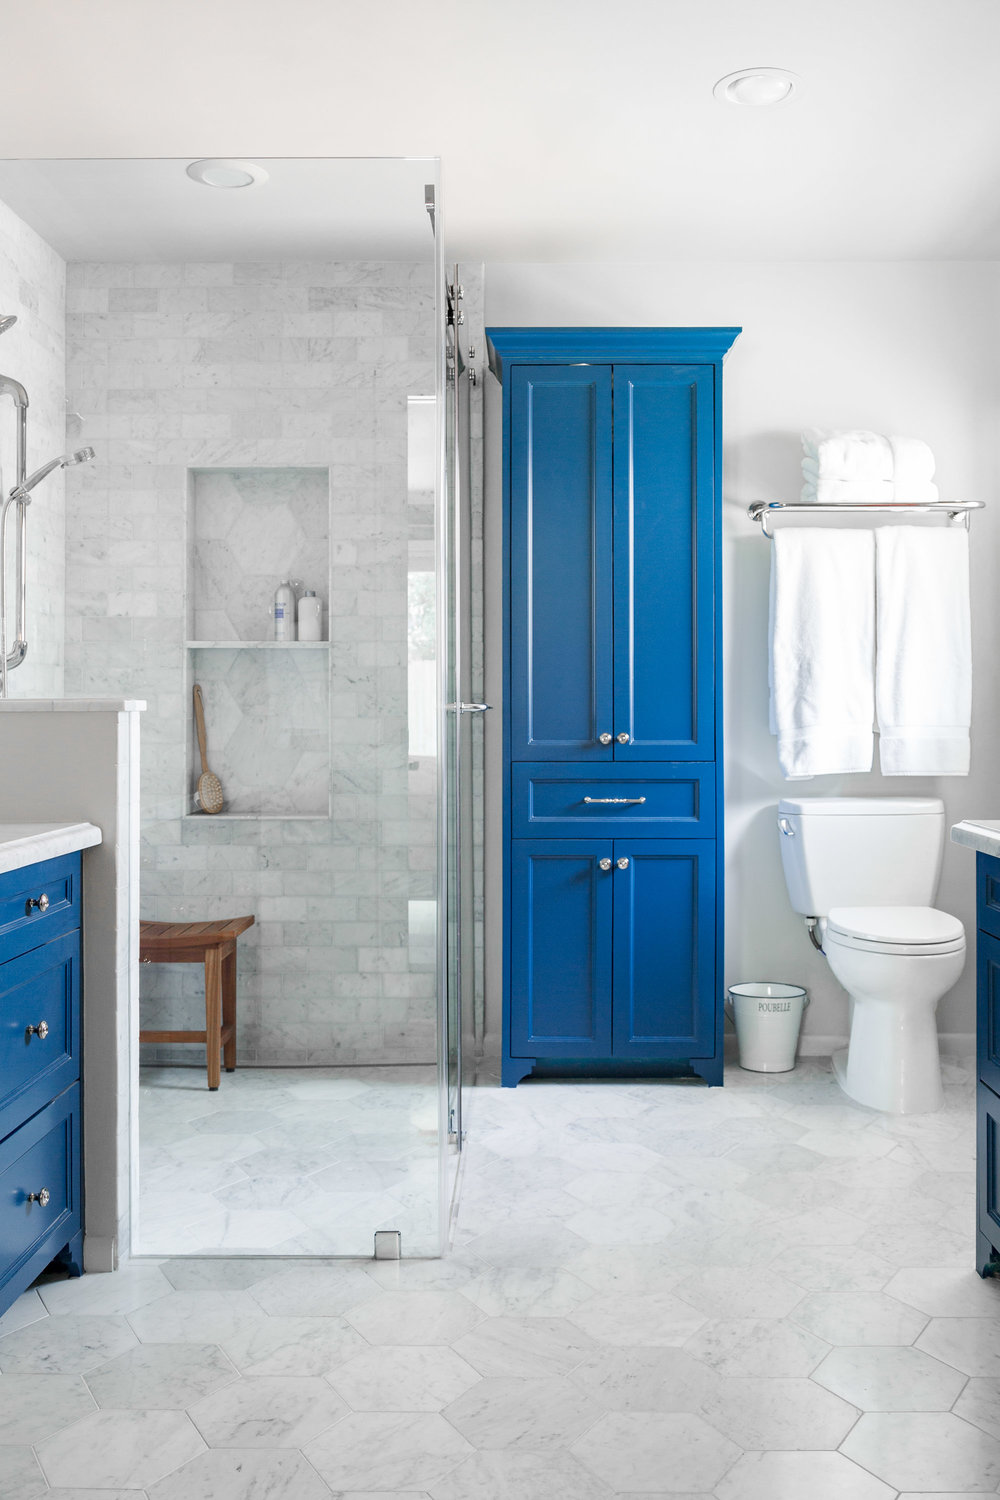 New Carrara marble bathroom remodel with blue cabinetry Carla Aston Designer Tori Aston